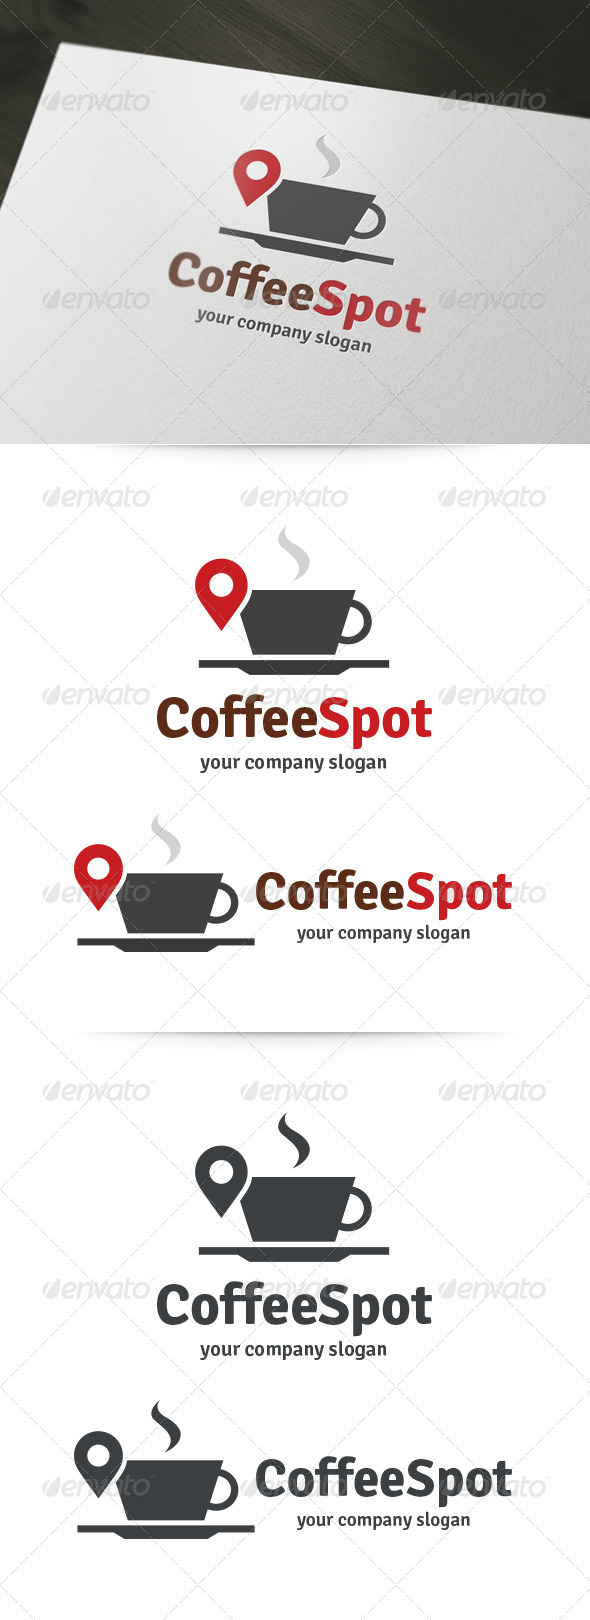 GraphicRiver Coffee Spot Logo 5956925